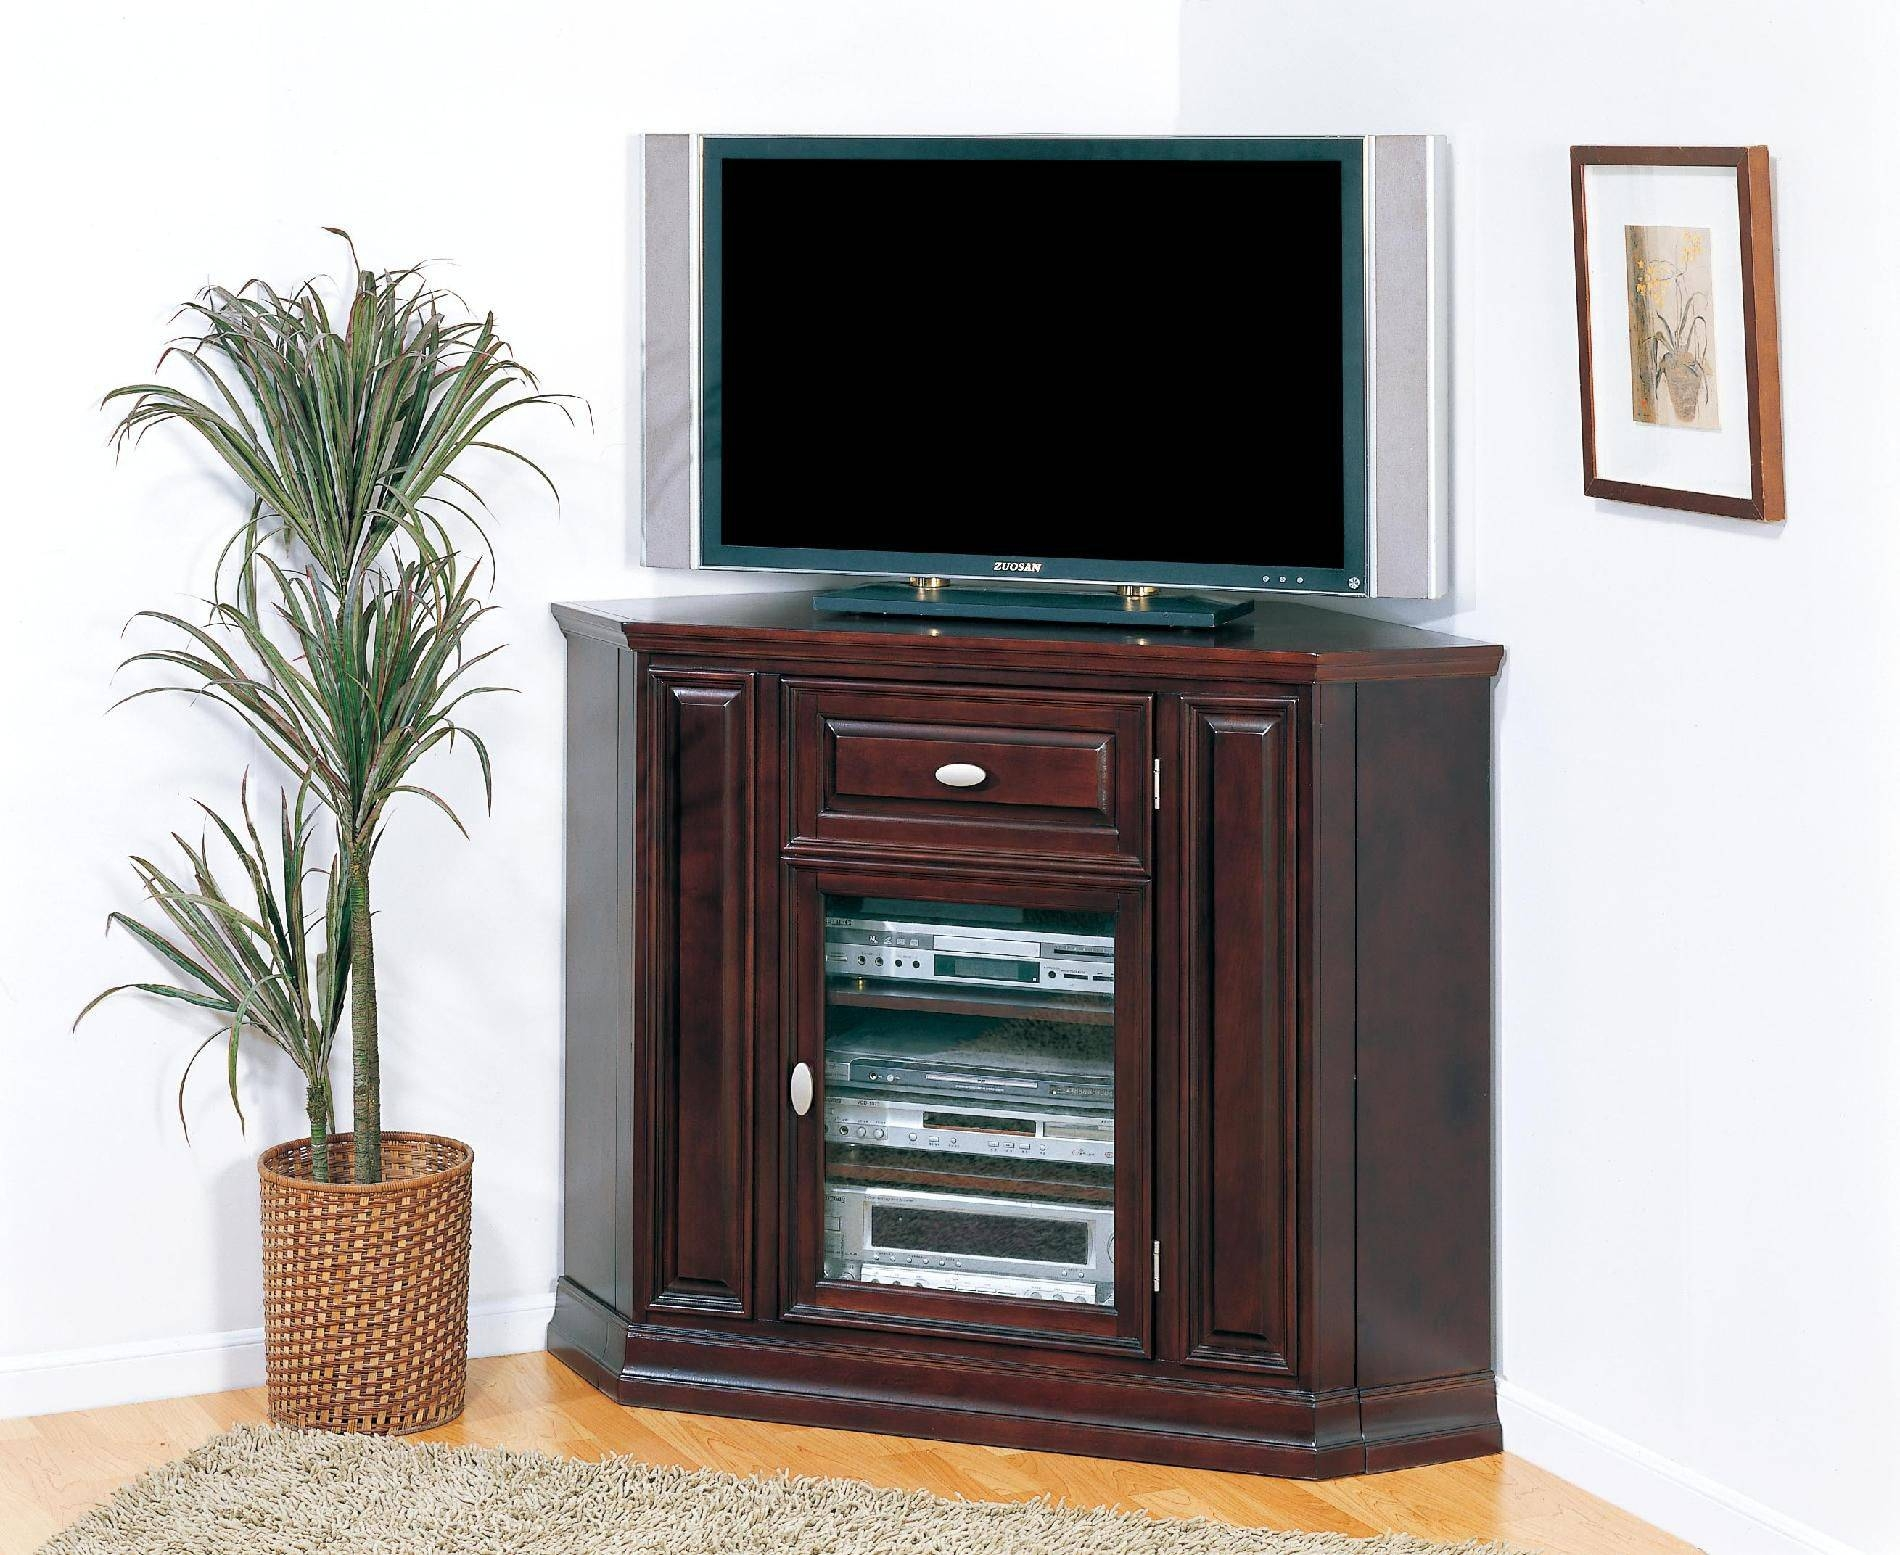 Tall Corner Tv Stand Boom S Deals On Tall Corner Tv Stands (View 13 of 15)